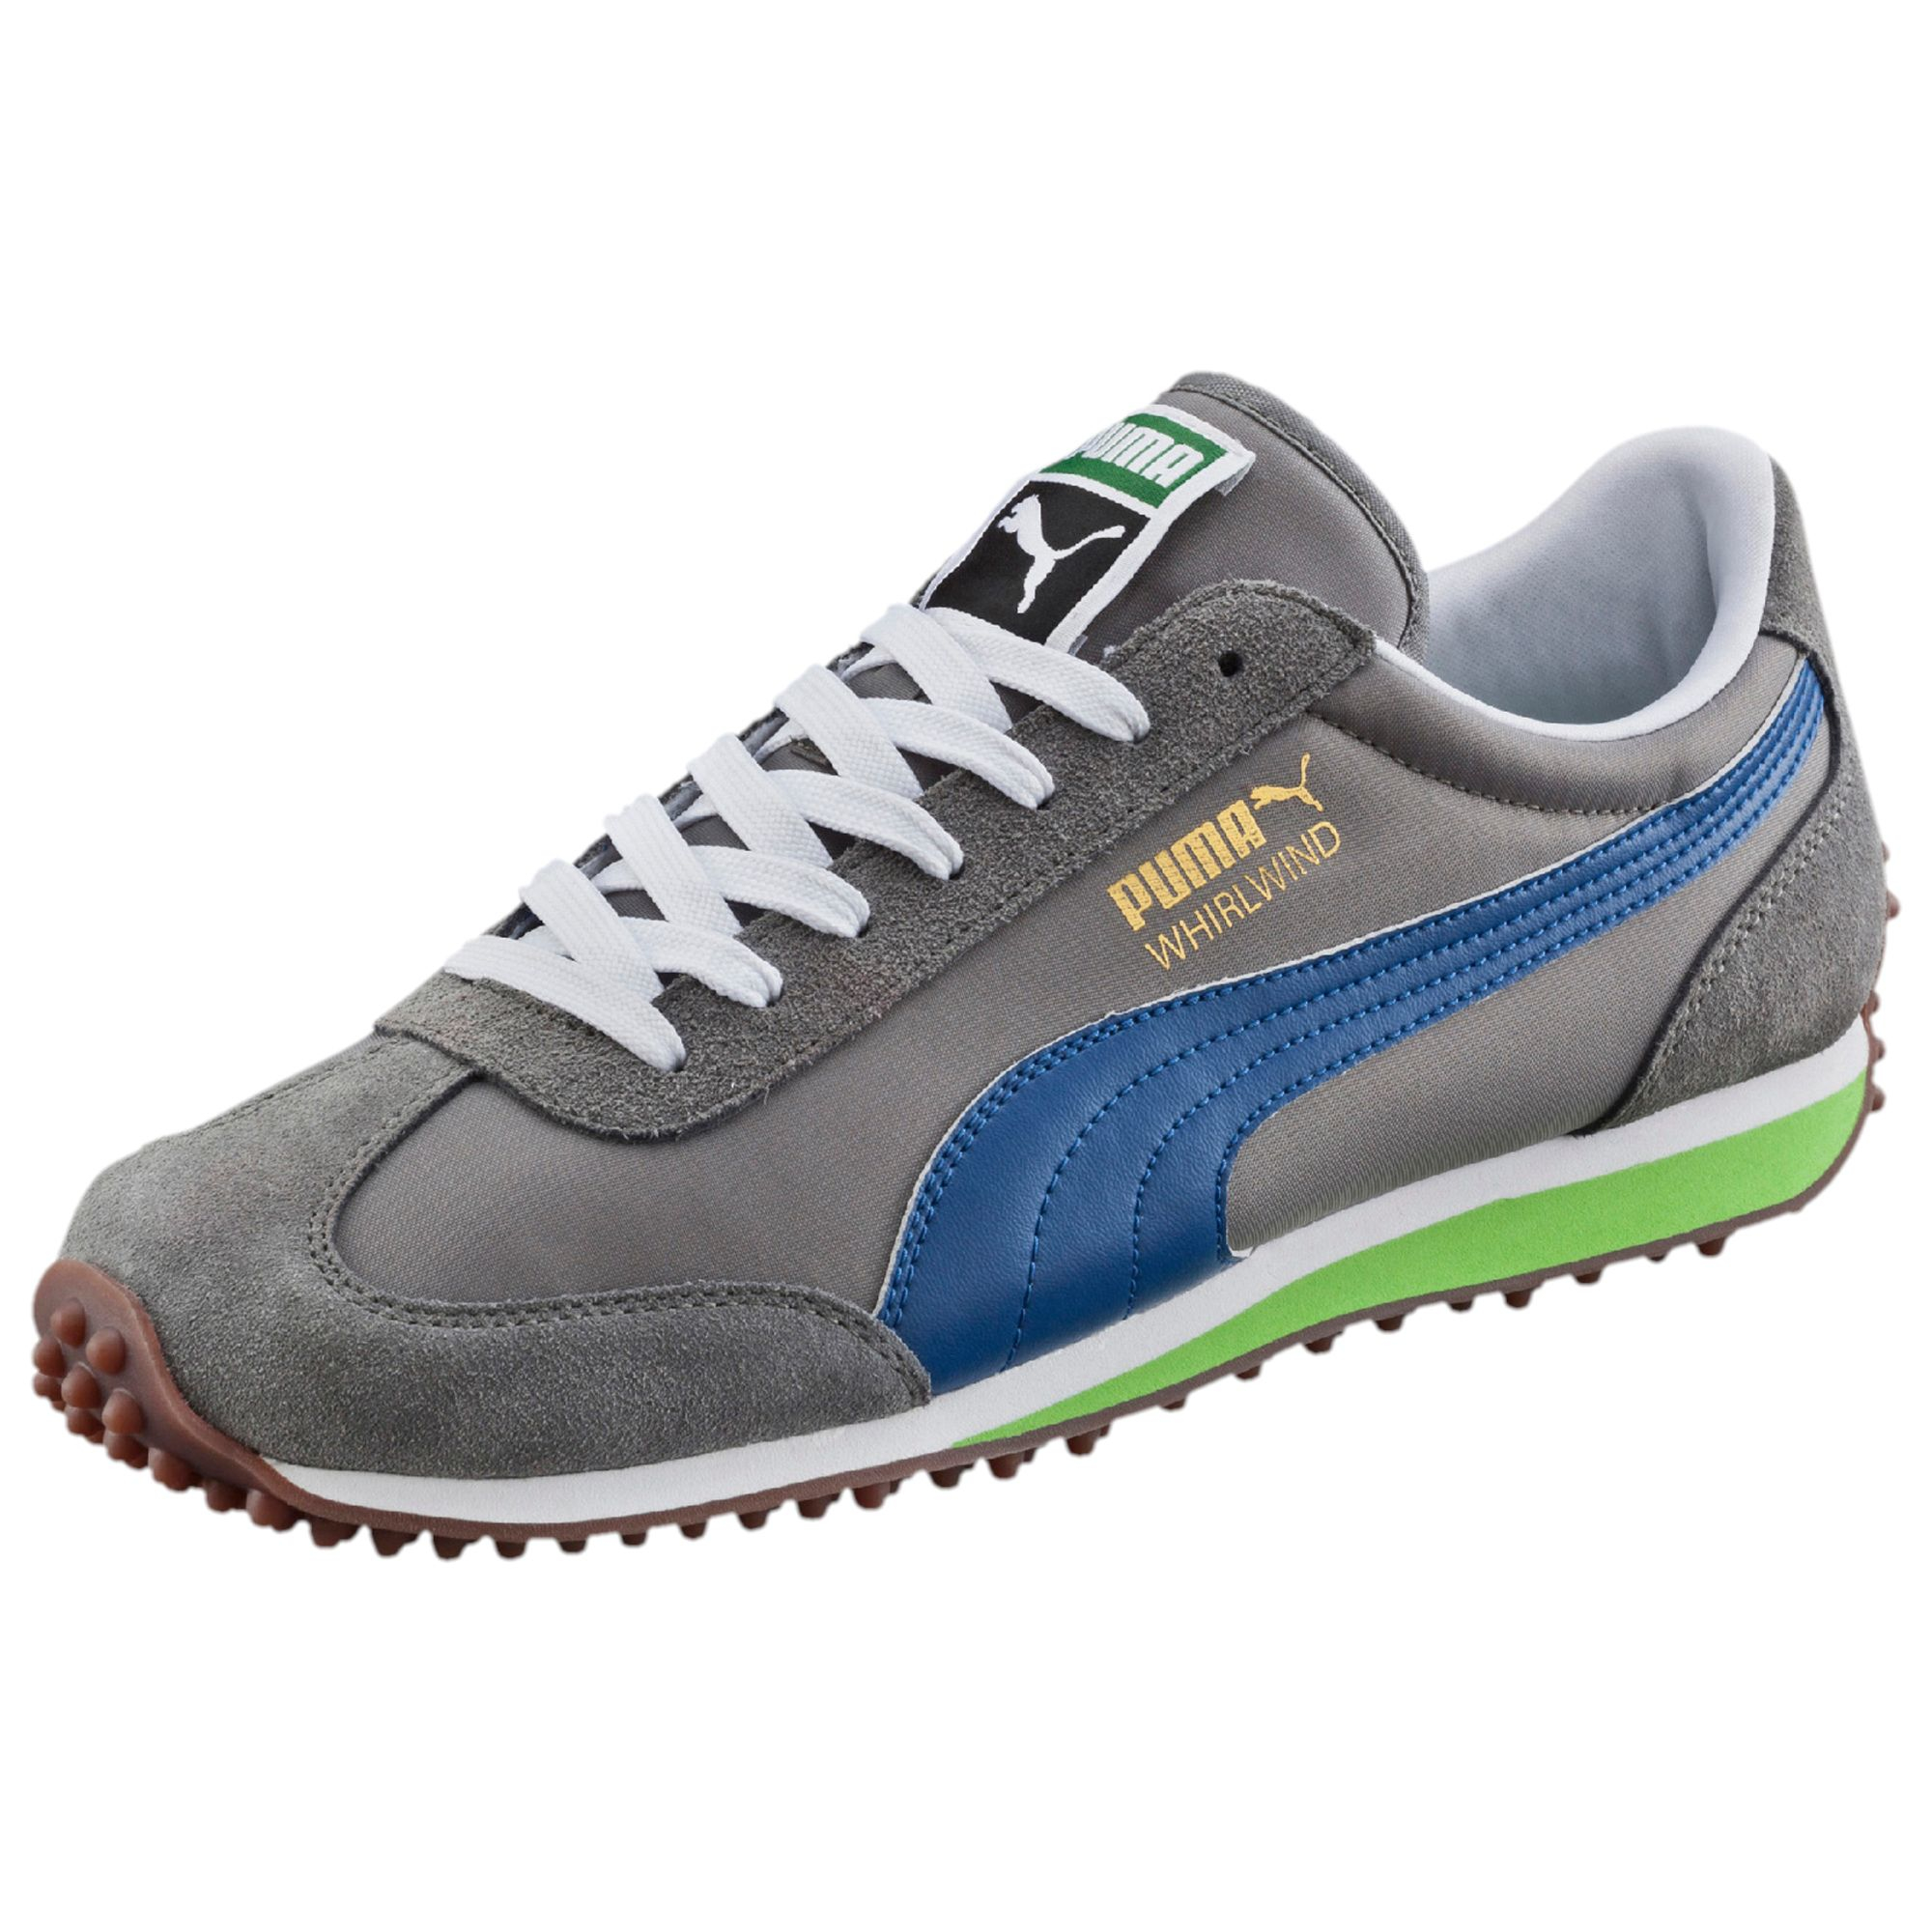 Lyst - PUMA Whirlwind Classic Men s Sneakers in Gray for Men 14cd00840